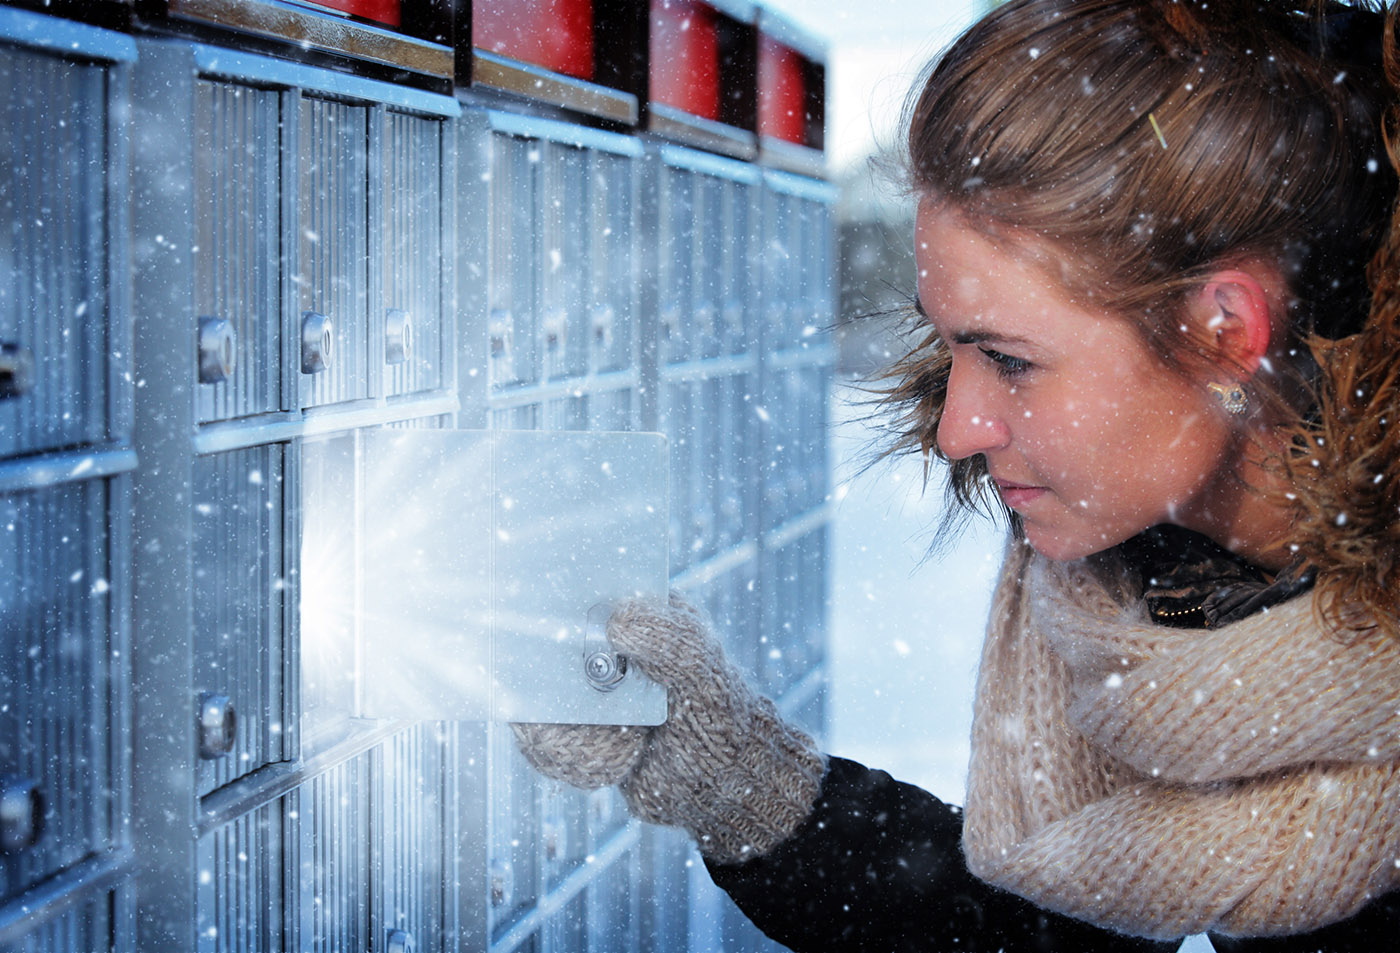 Pretty Woman Looking at Highlighted Mailbox in Winter - RF Stock Image